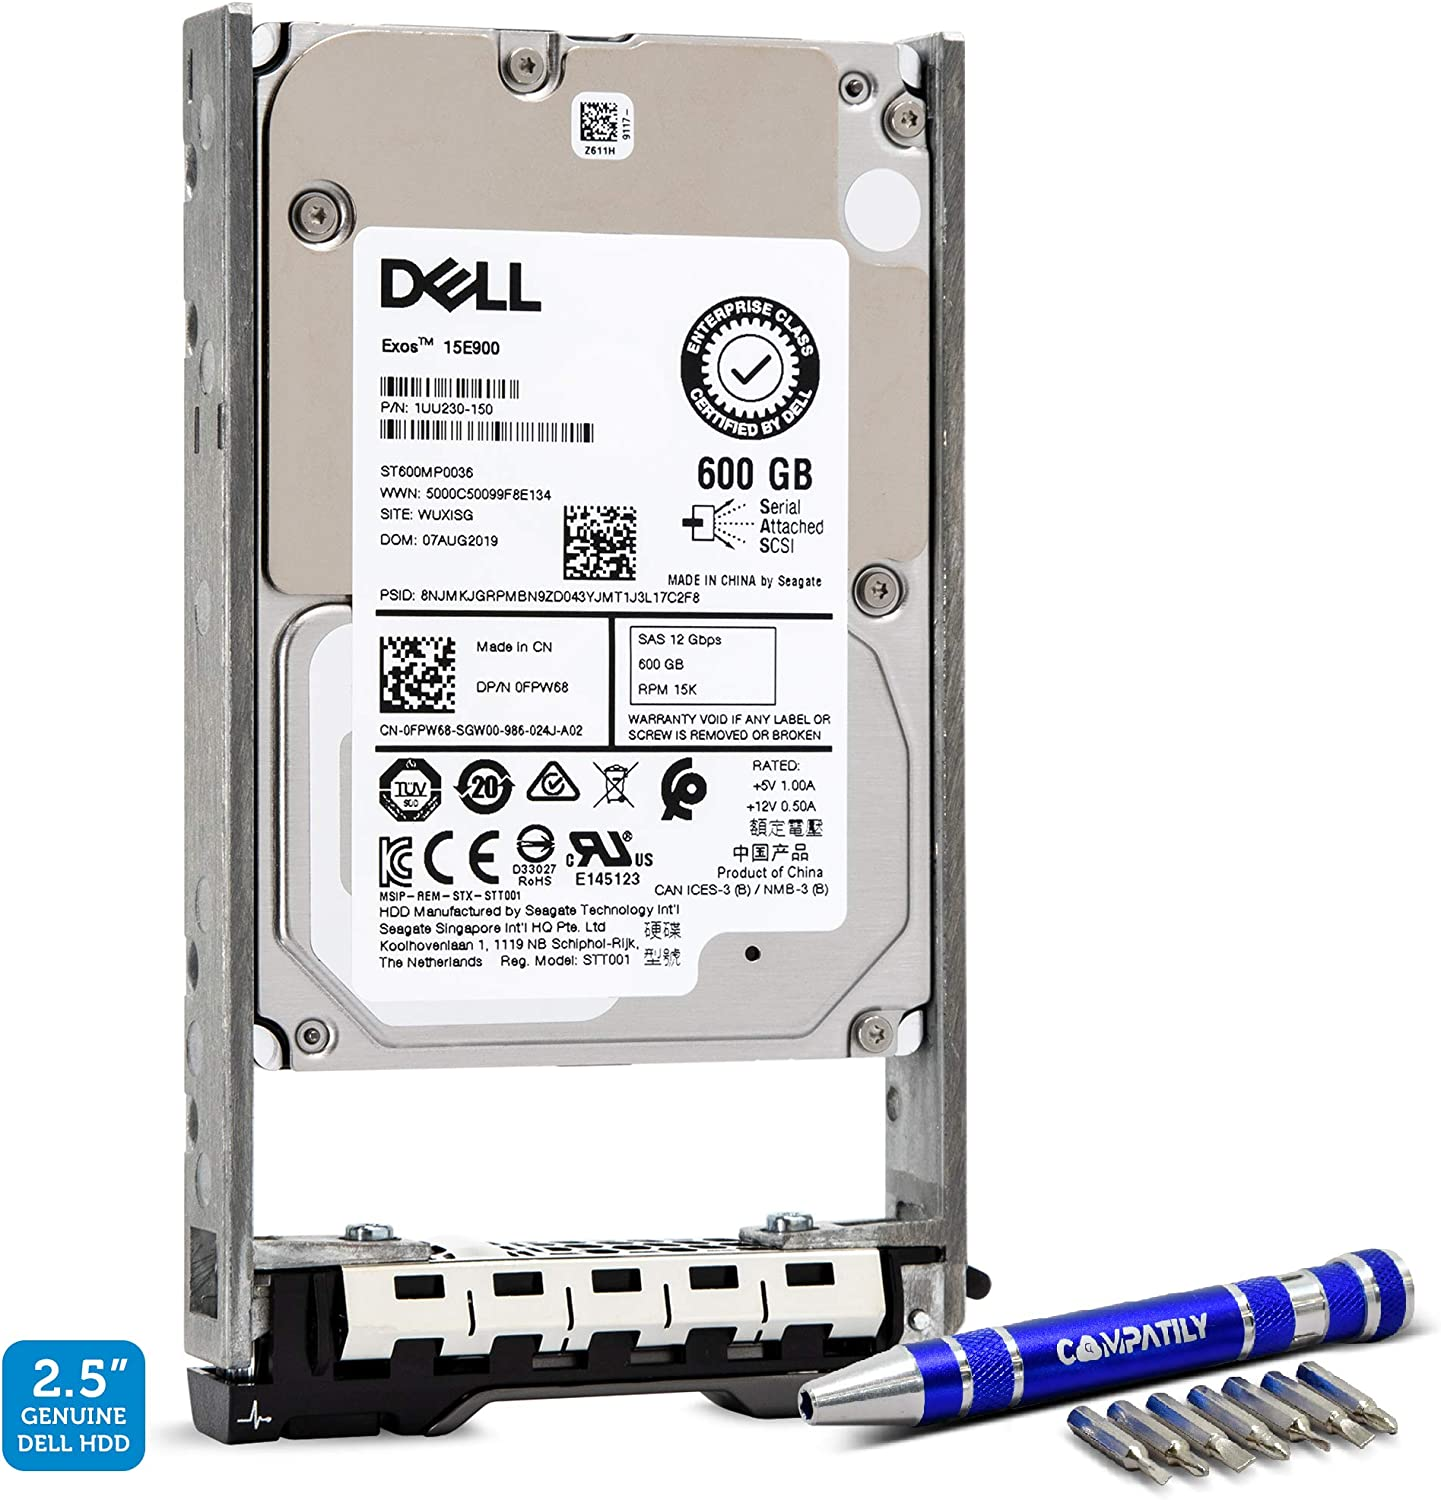 Dell 400-AJRF 600GB 15K SAS 12G 2.5-Inch PowerEdge Enterprise Hard Drive in 13G Tray Bundle with Compatily Screwdriver Compatible with ST600MP0036 R920 R930 T710 R720 R420 MD1220 MD3420